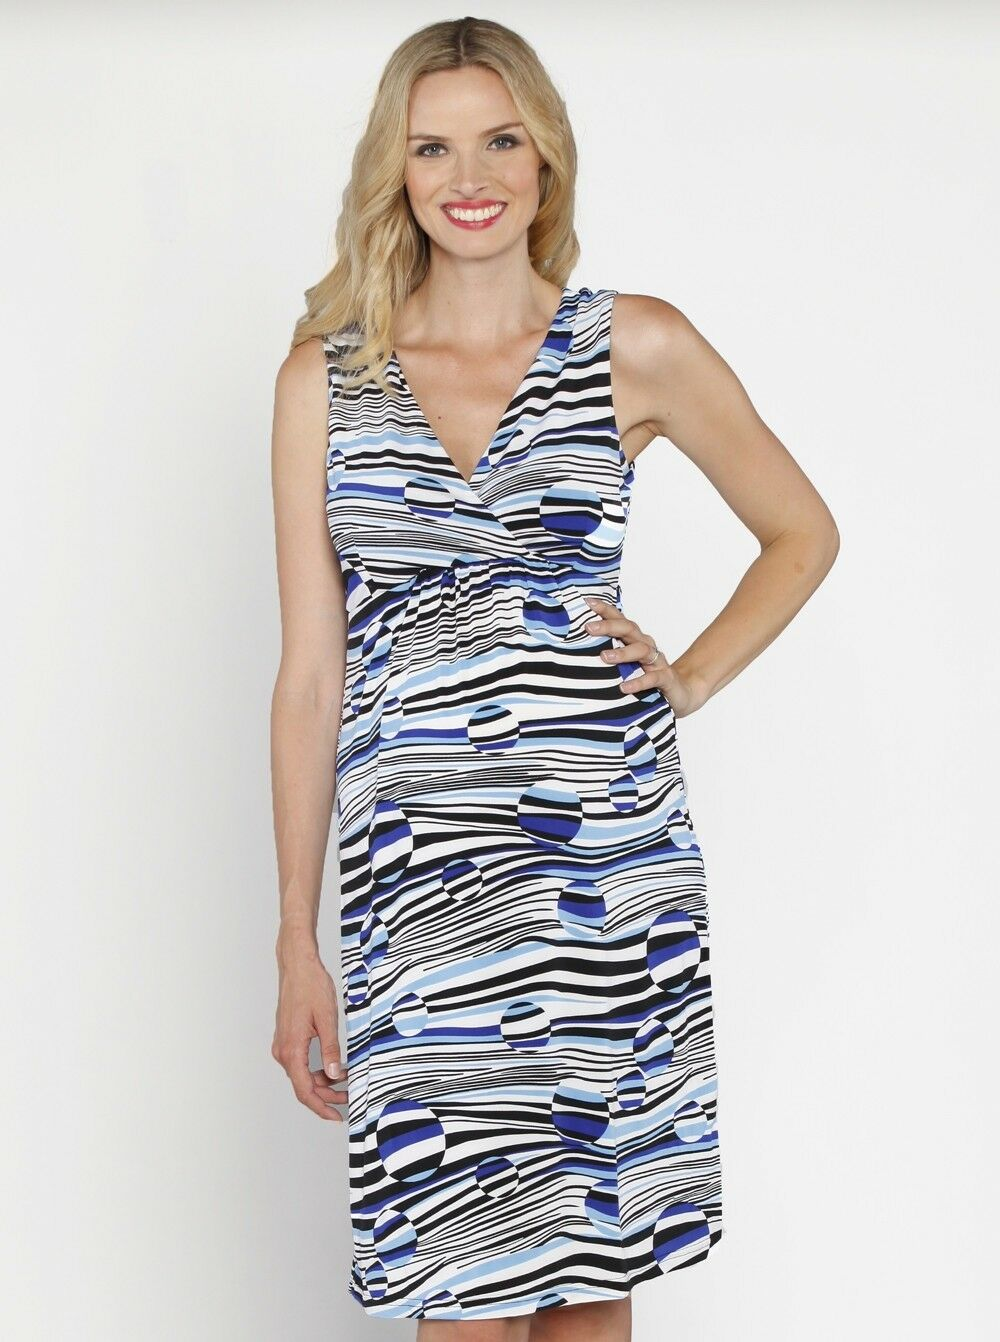 Credver Jersey Dress - bluee Prints